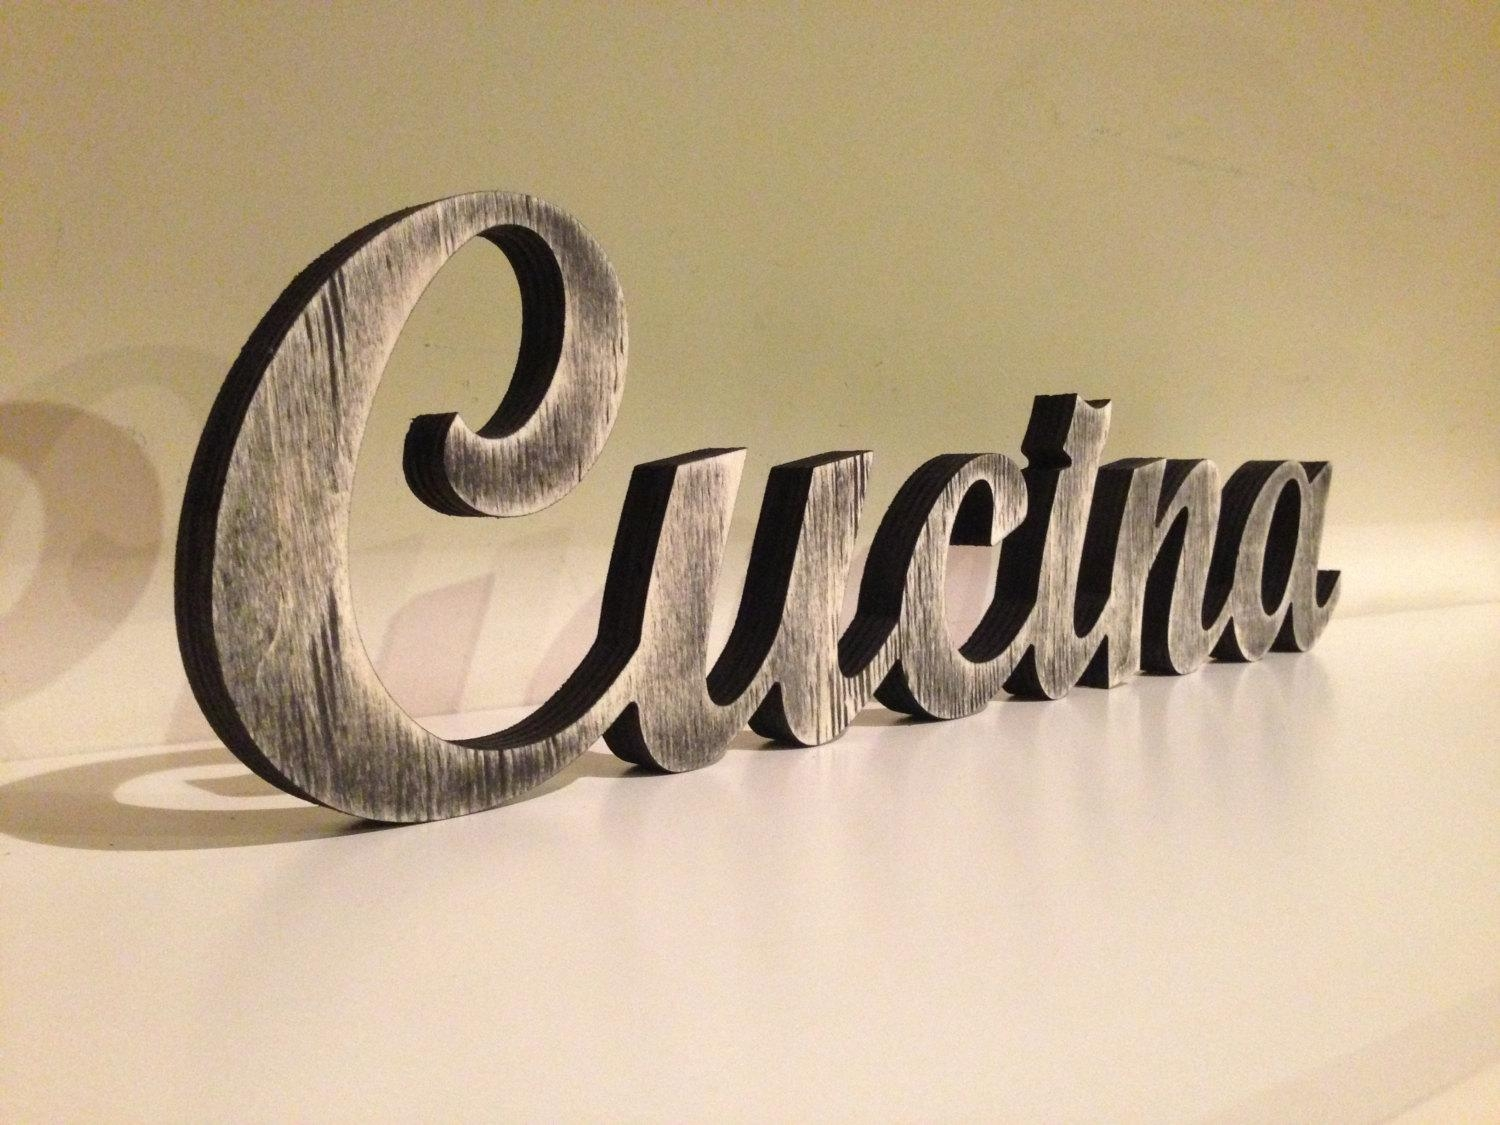 Cucina Italiana Italian Word For Kitchen Kitchen Sign Throughout Cucina Wall Art Decors (Image 9 of 20)